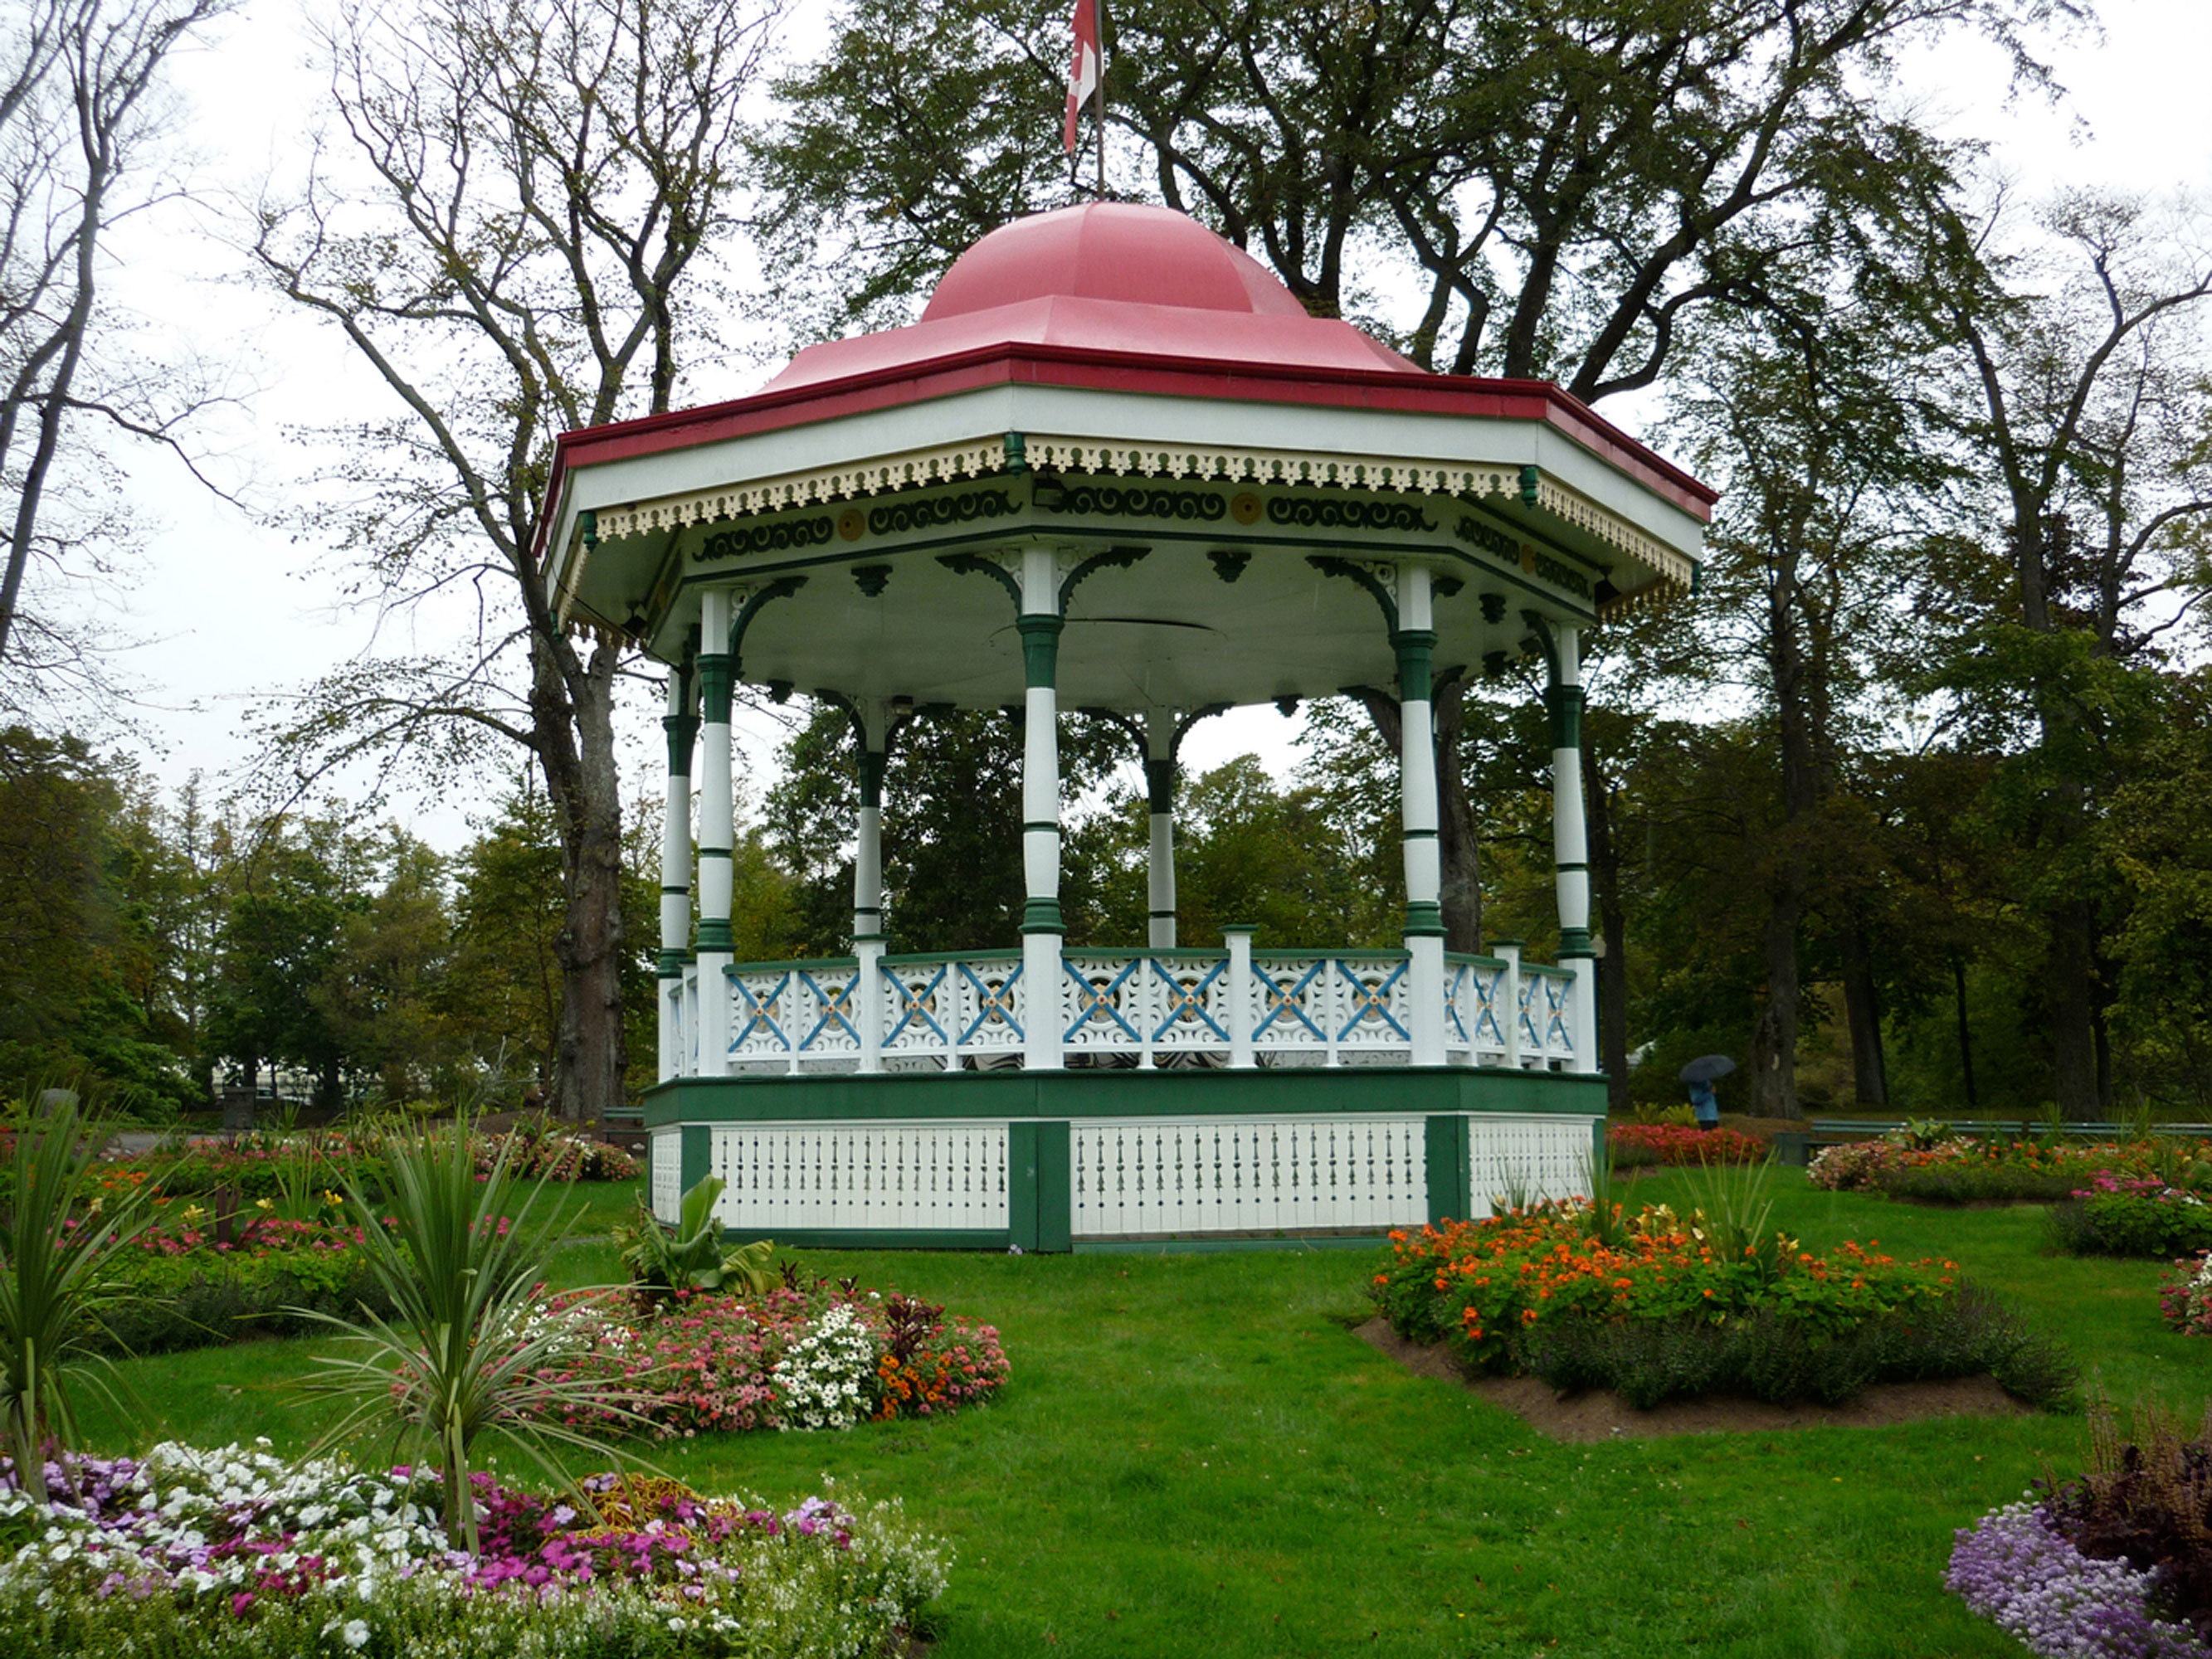 """image by <a href=""""http://www.freeimageslive.co.uk/free_stock_image/bandstand-jpg"""" target=""""_blank""""> freeimageslive.co.uk - silvervoyager</a>"""